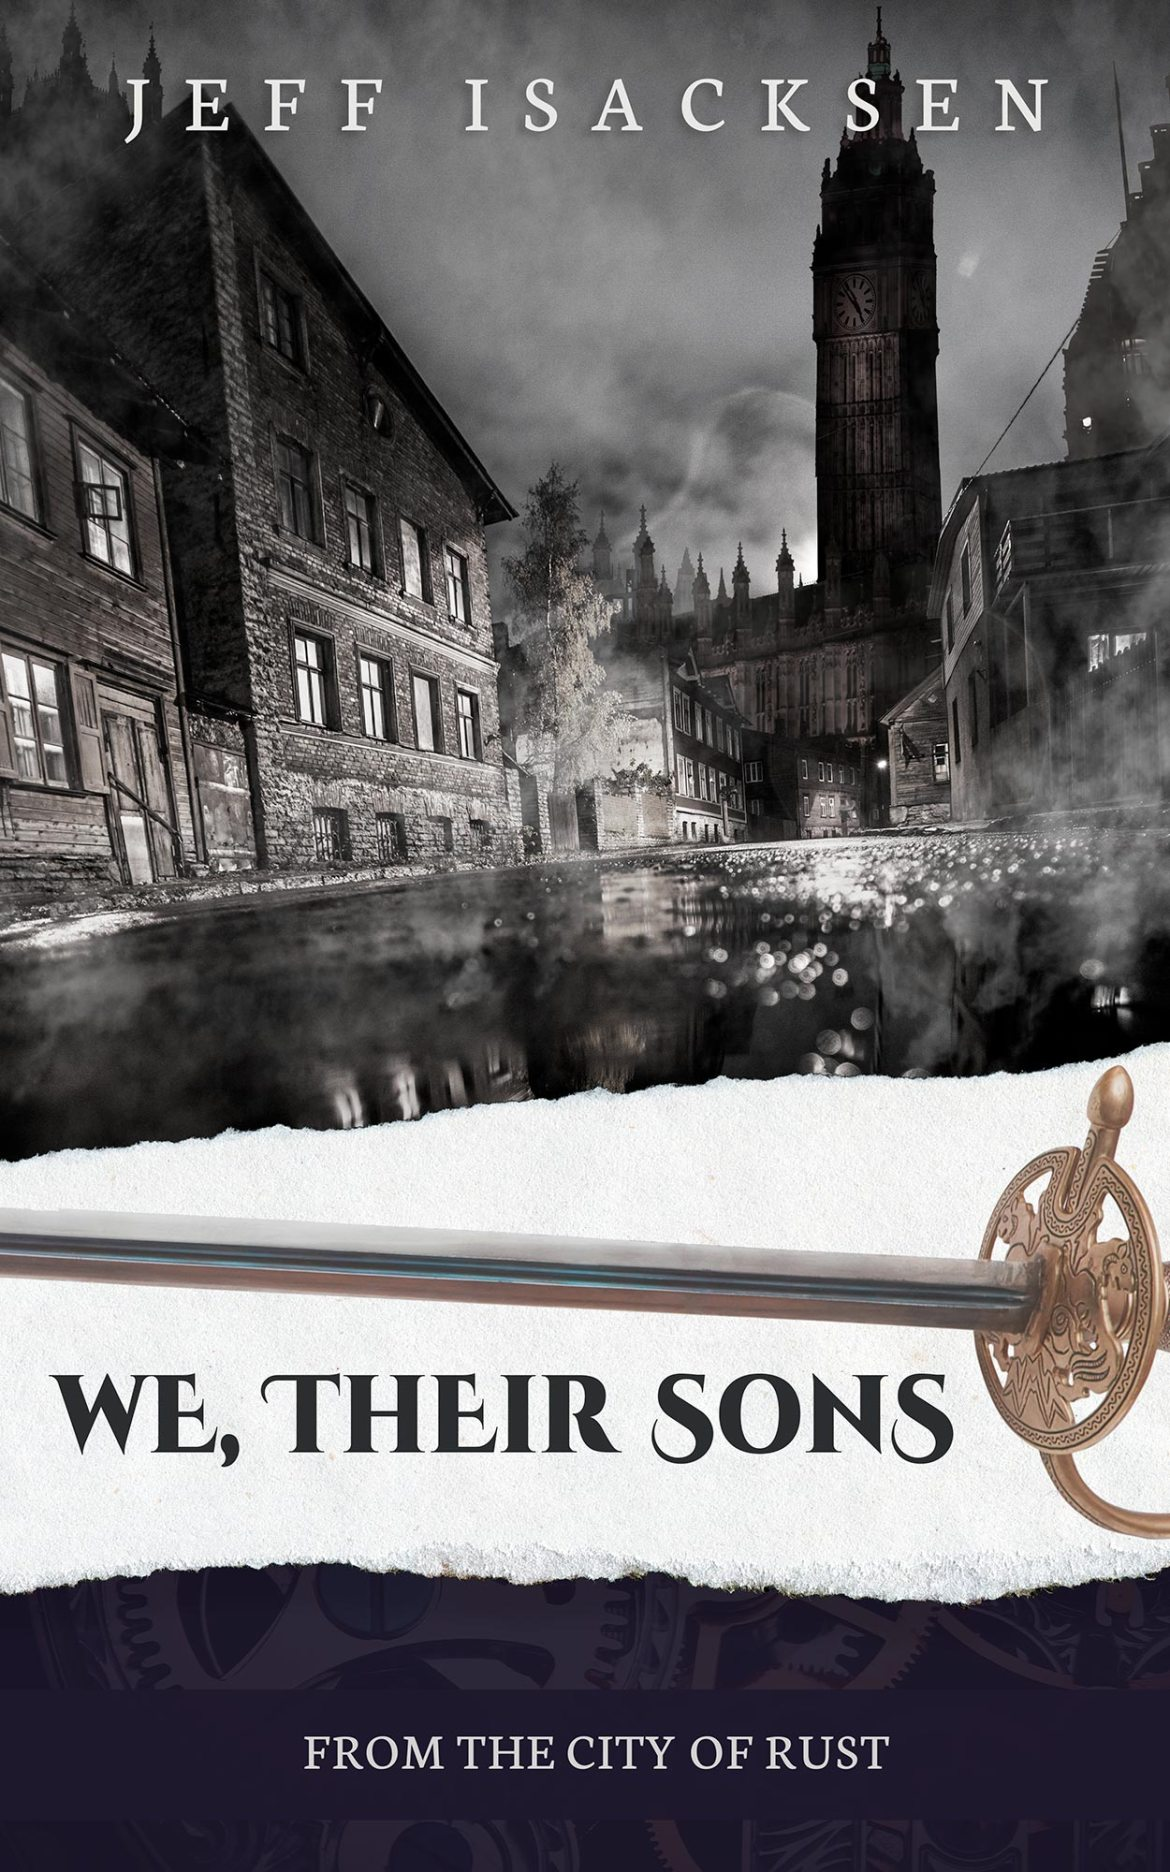 We, Their Sons by Jeff Isacksen